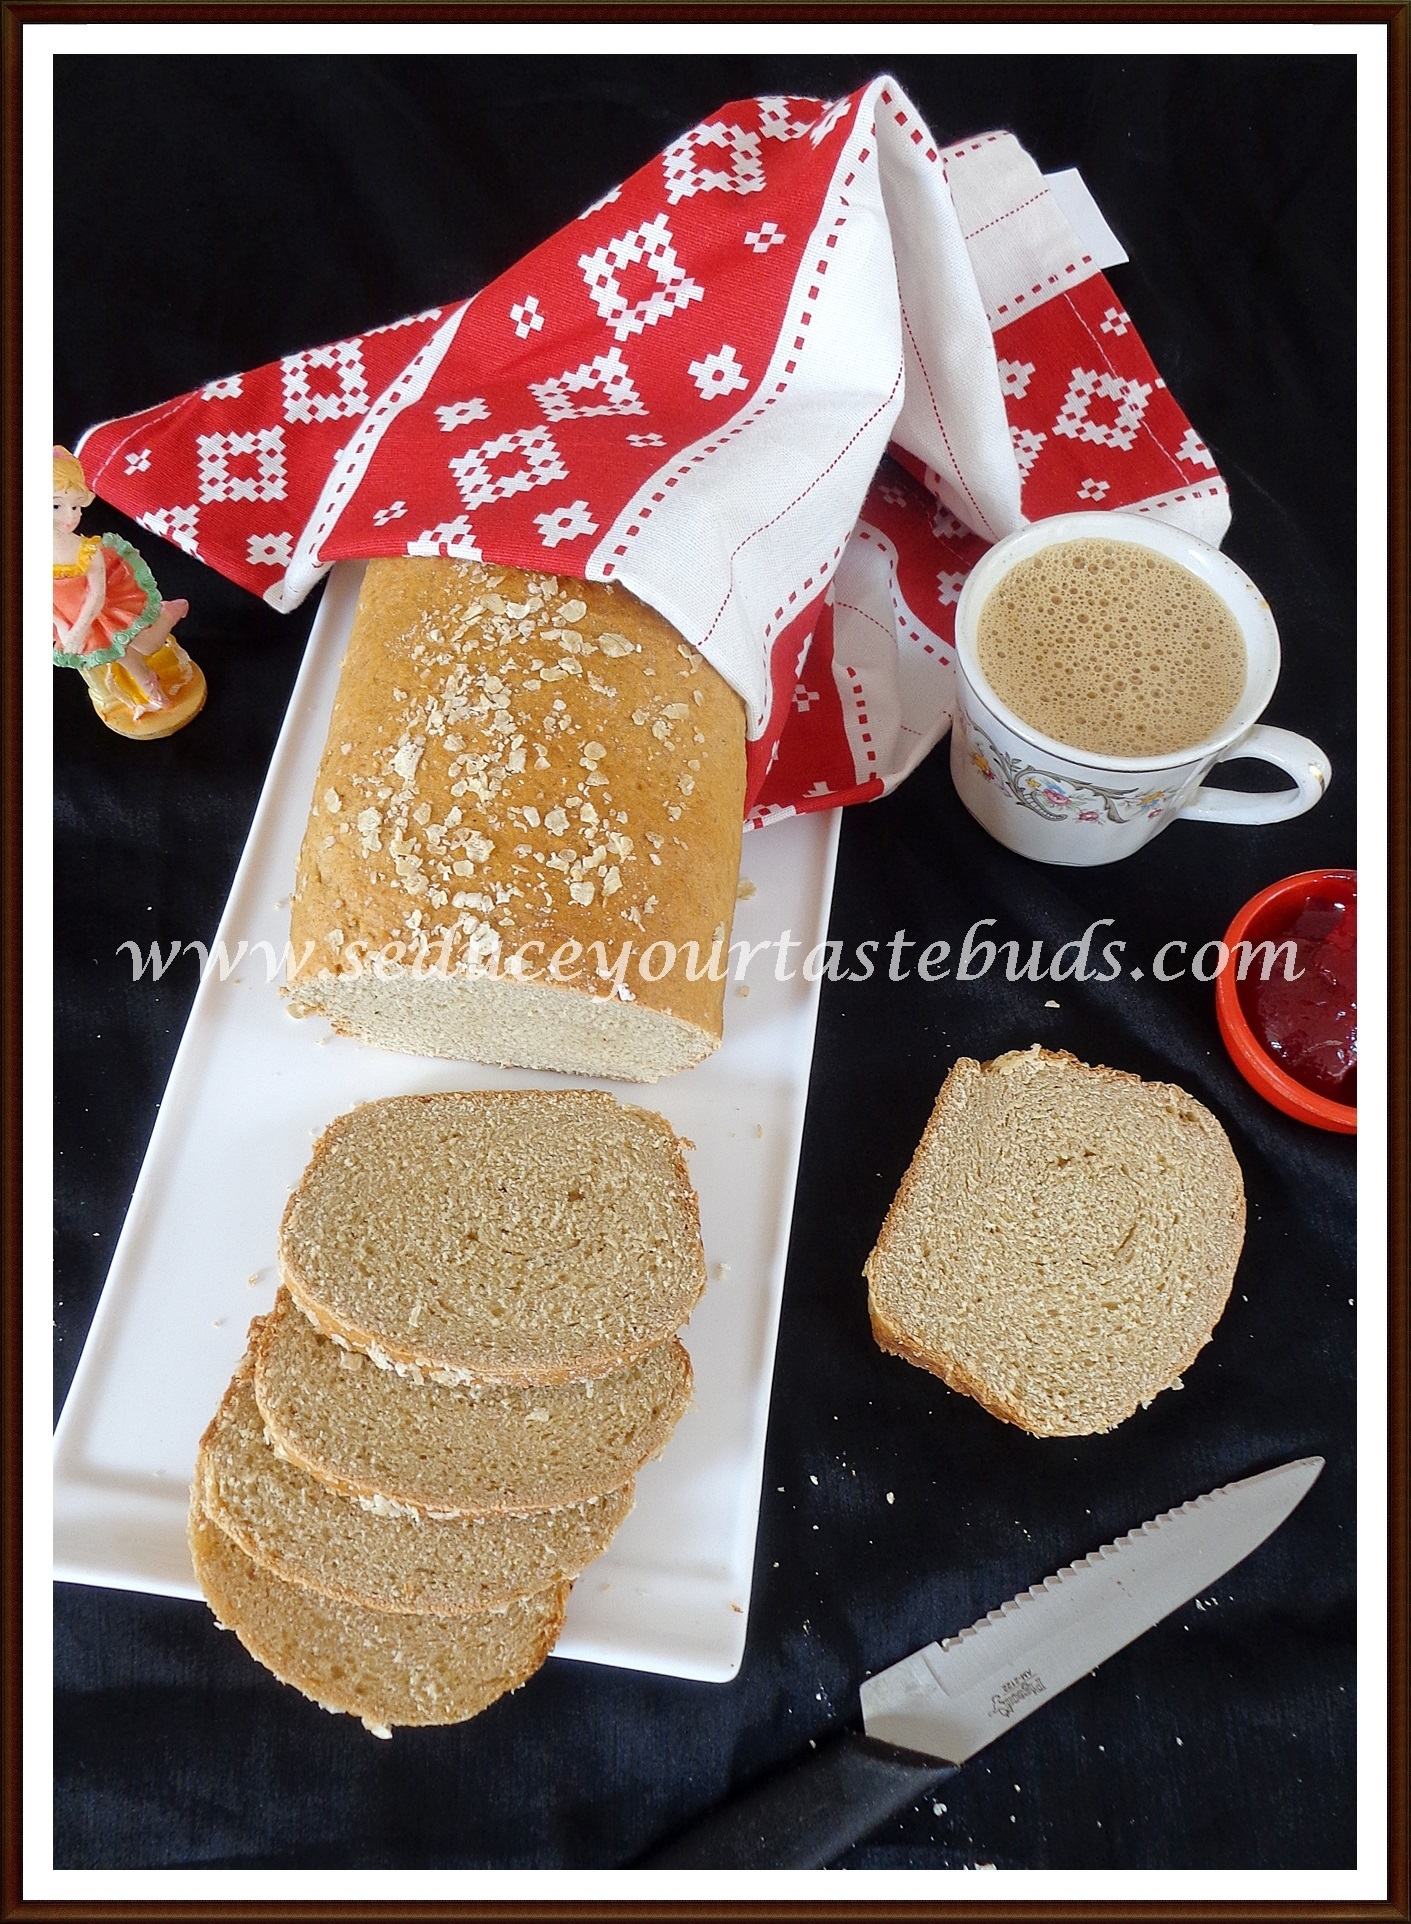 Yeasted Banana Sandwich Bread